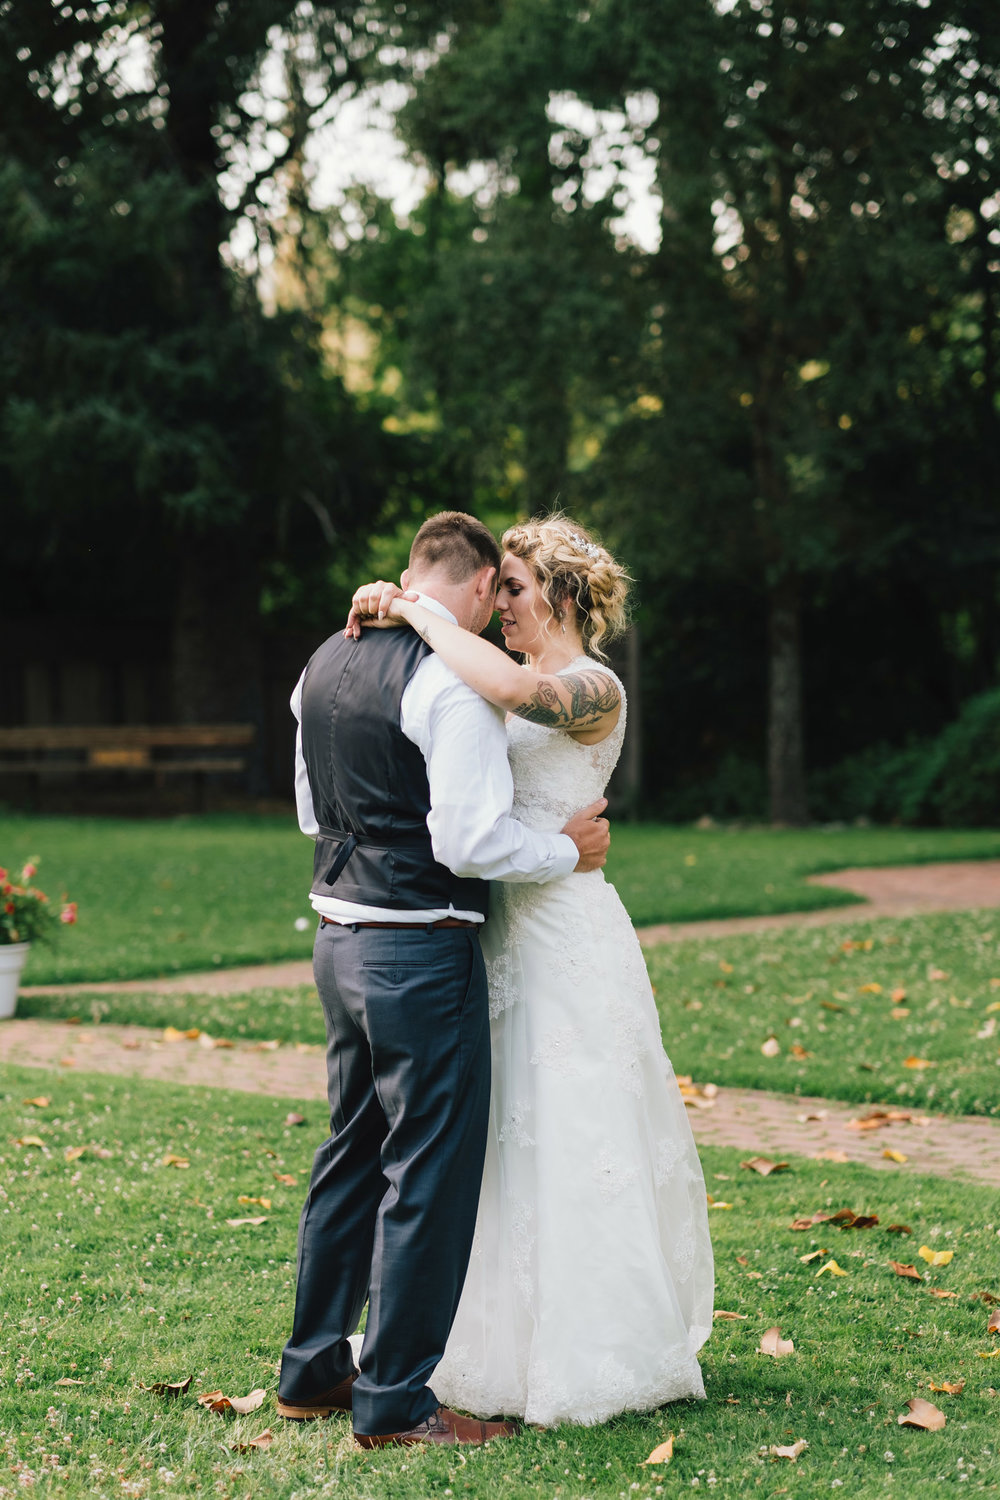 6-24-17 April and Josh Wedding-146.jpg